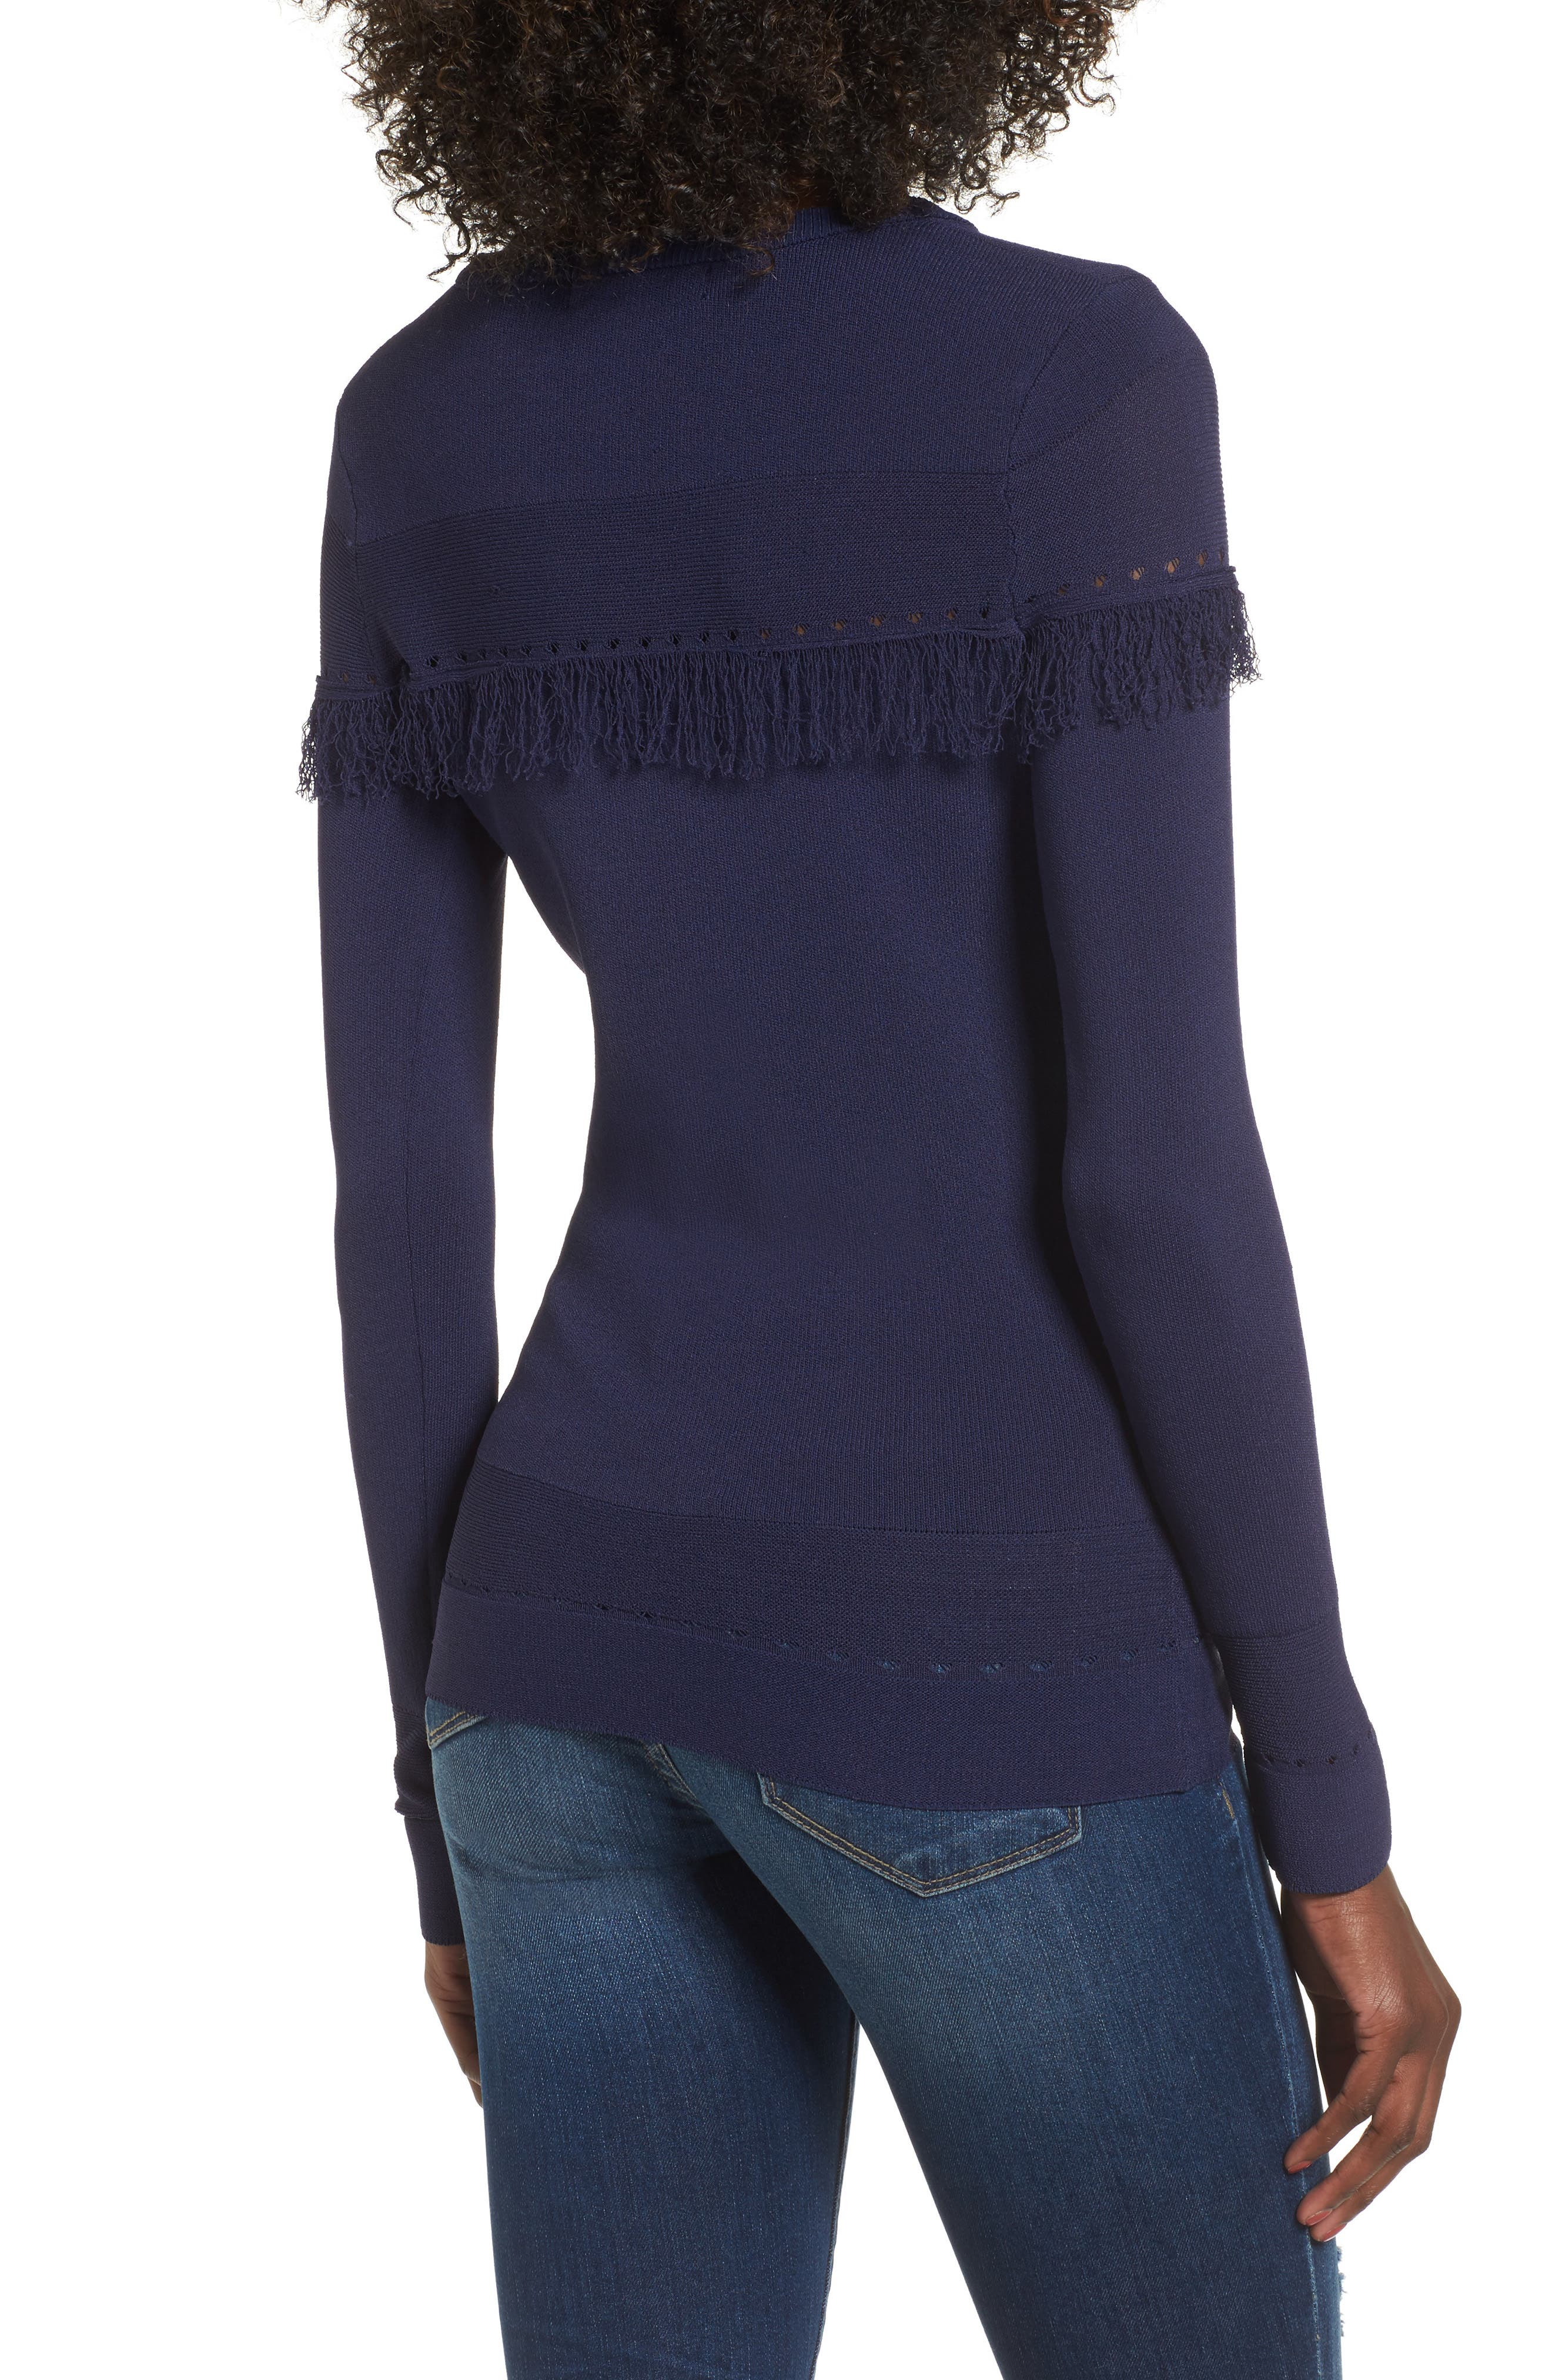 Kash Fringed Top,                             Alternate thumbnail 2, color,                             400